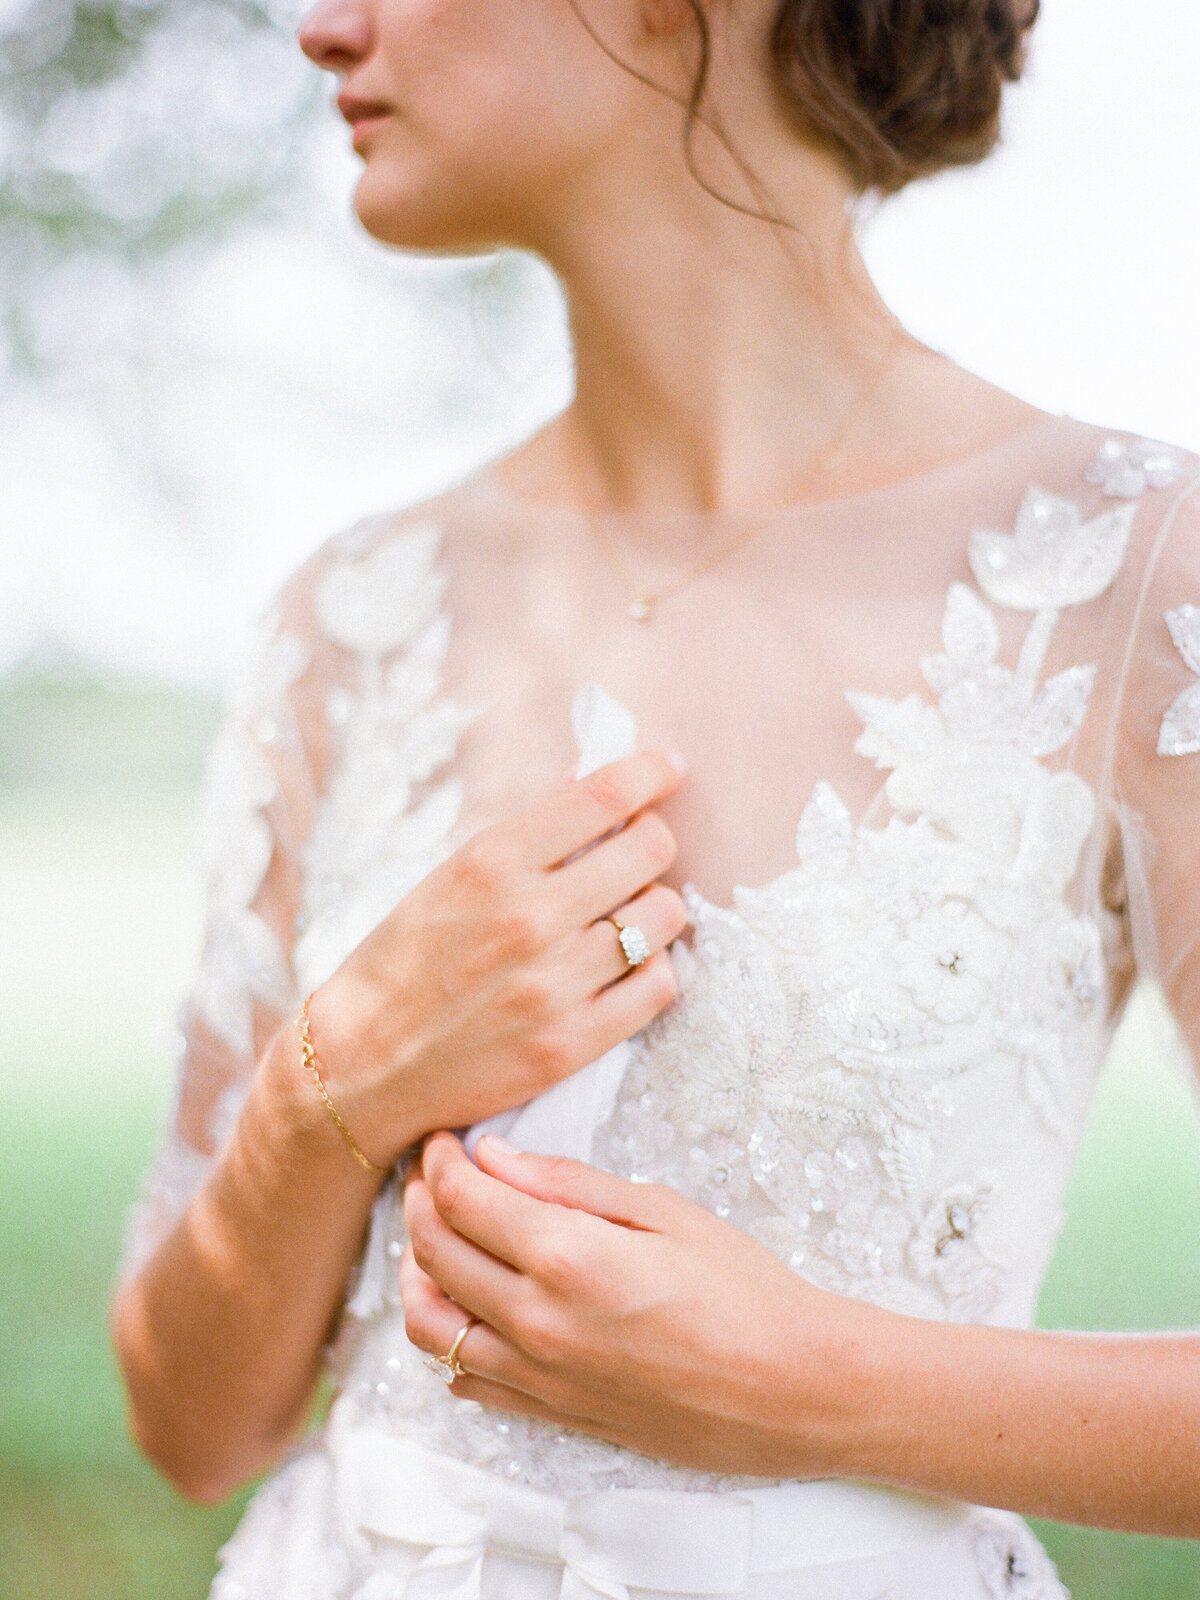 Close up of a bride's wedding dress bodice on her wedding day